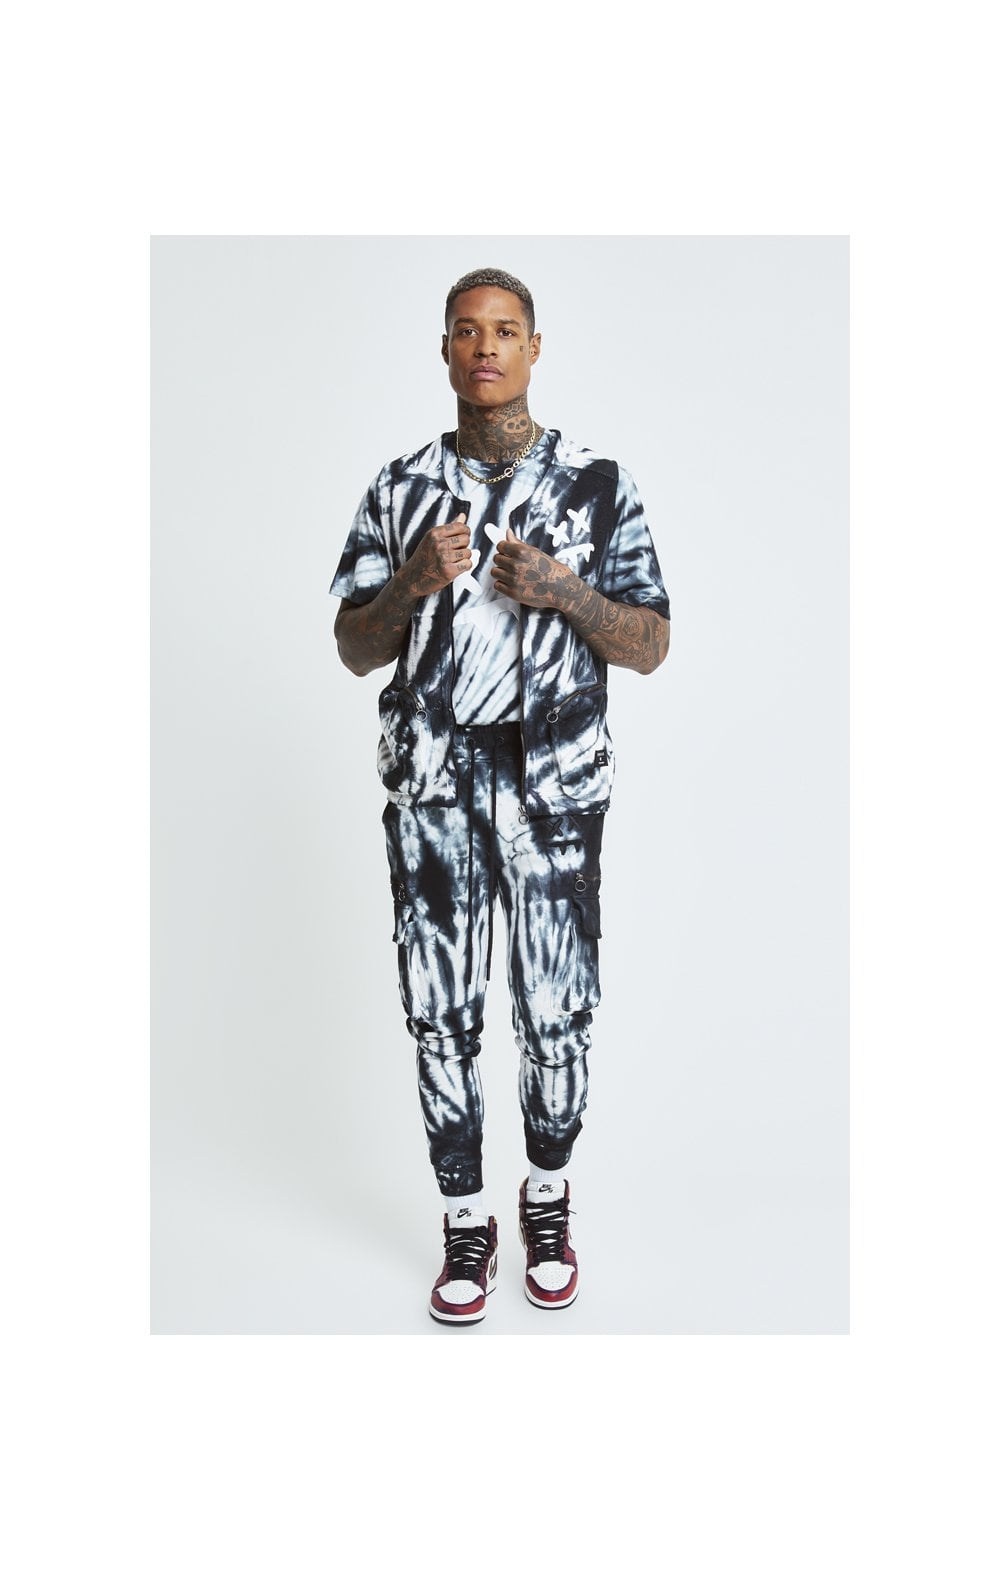 Load image into Gallery viewer, SikSilk X Steve Aoki Utility Vest - Black & White Ink Tie Dye (3)